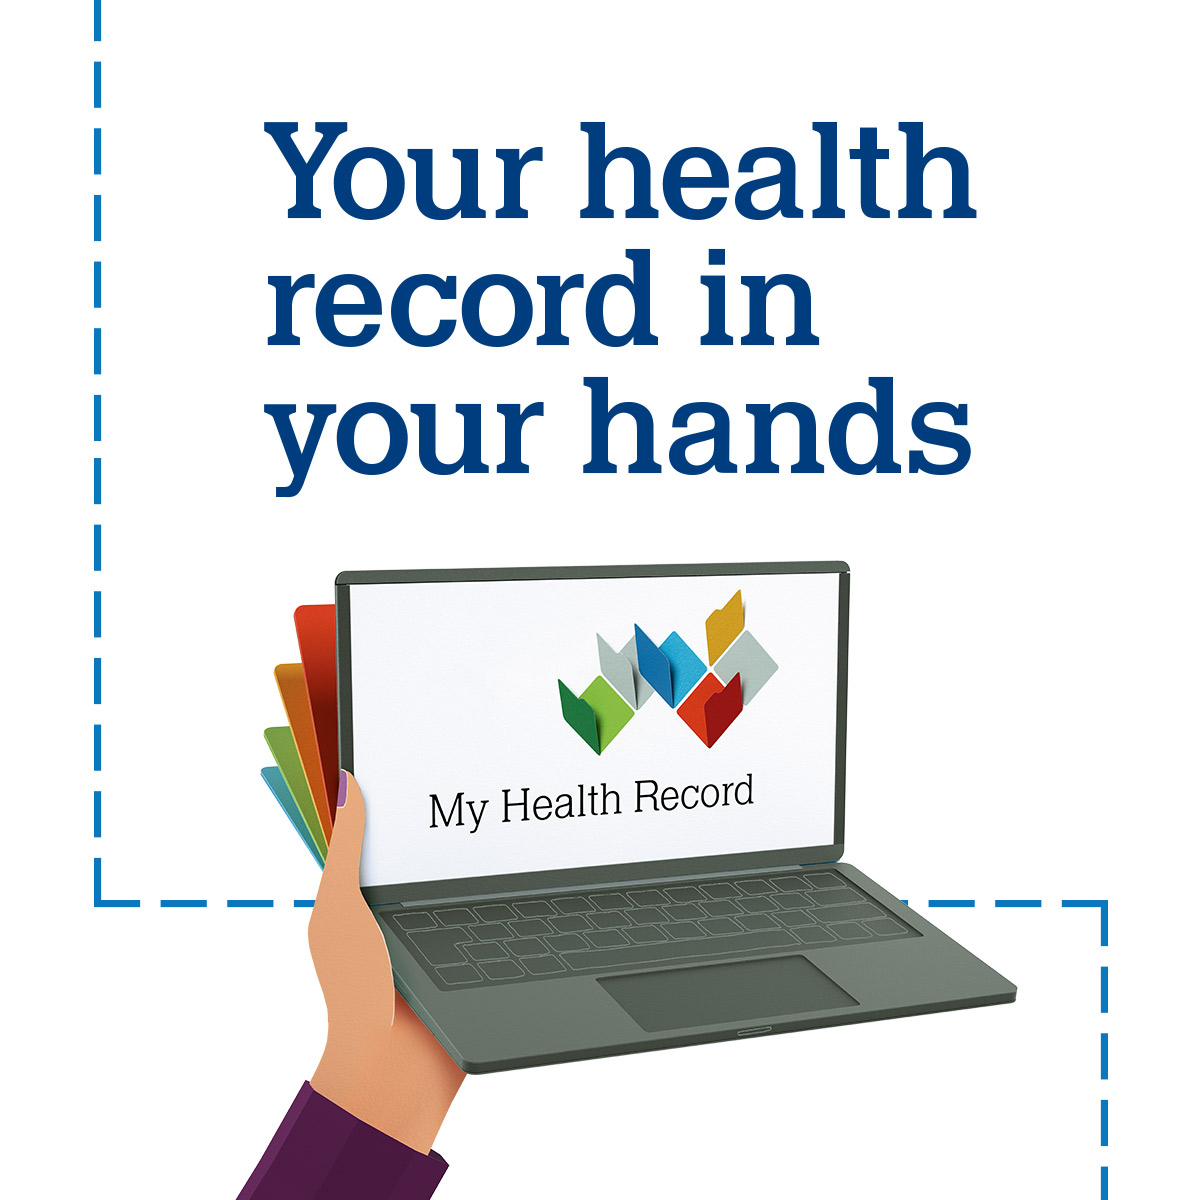 Australians to decide on a smarter and safer way to share their important healthcare information